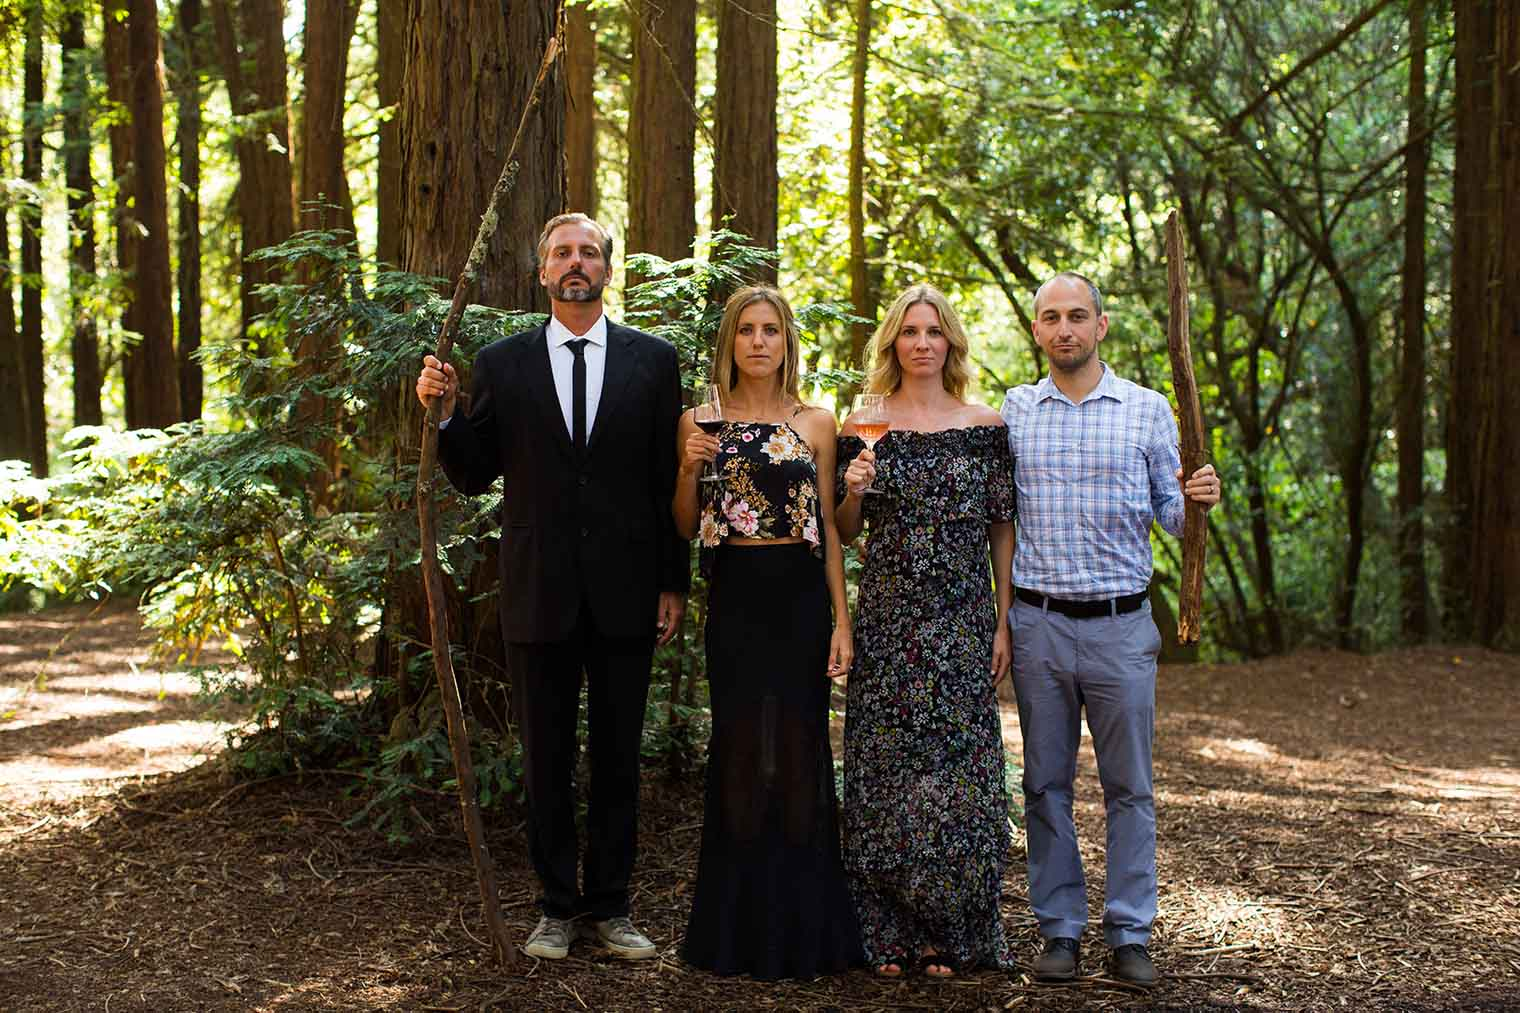 Wedding Guests Posed at Roberts Regional Park